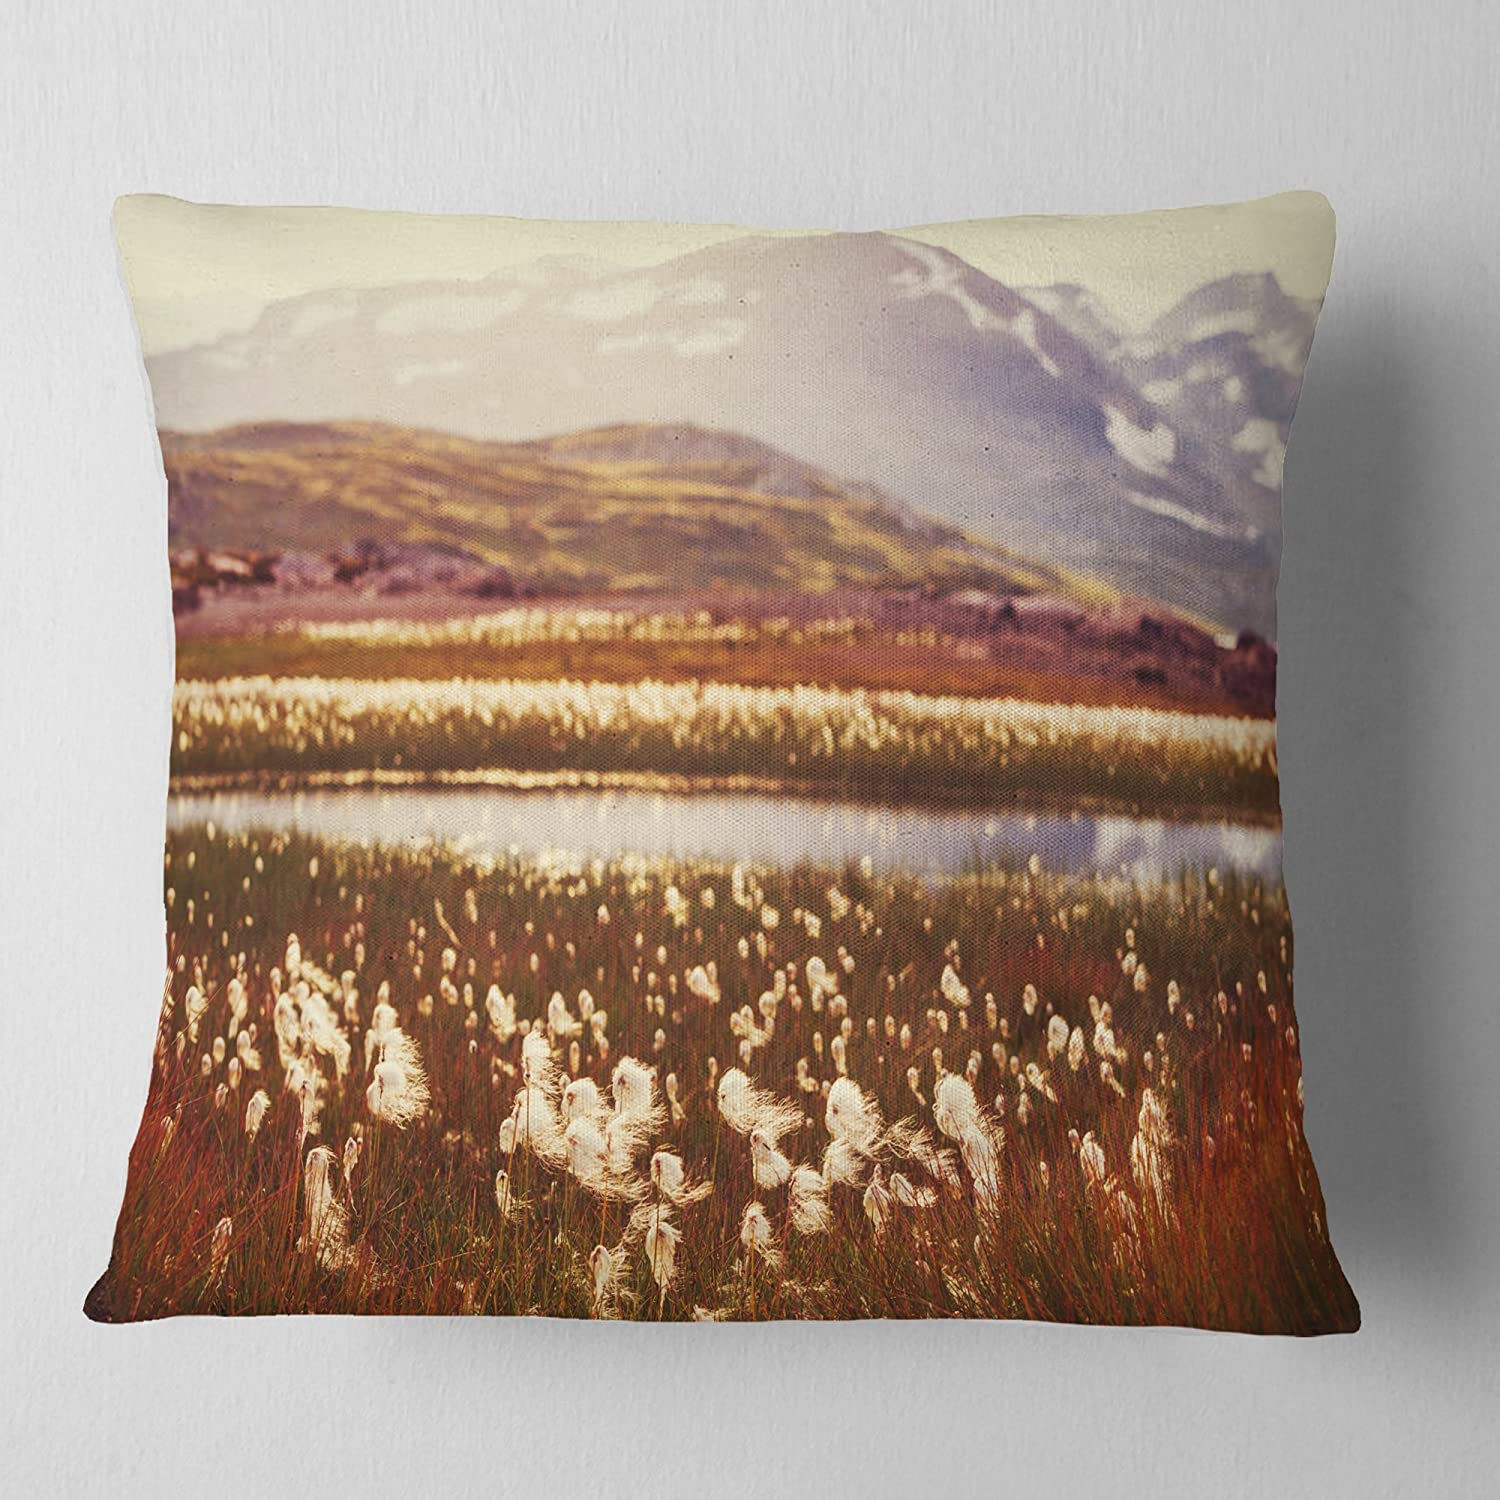 Designart CU12413-26-26 Cotton Flowers with Hills on Background Floral Cushion Cover for Living Room in Insert Printed On Both Side Sofa Throw Pillow 26 in x 26 in